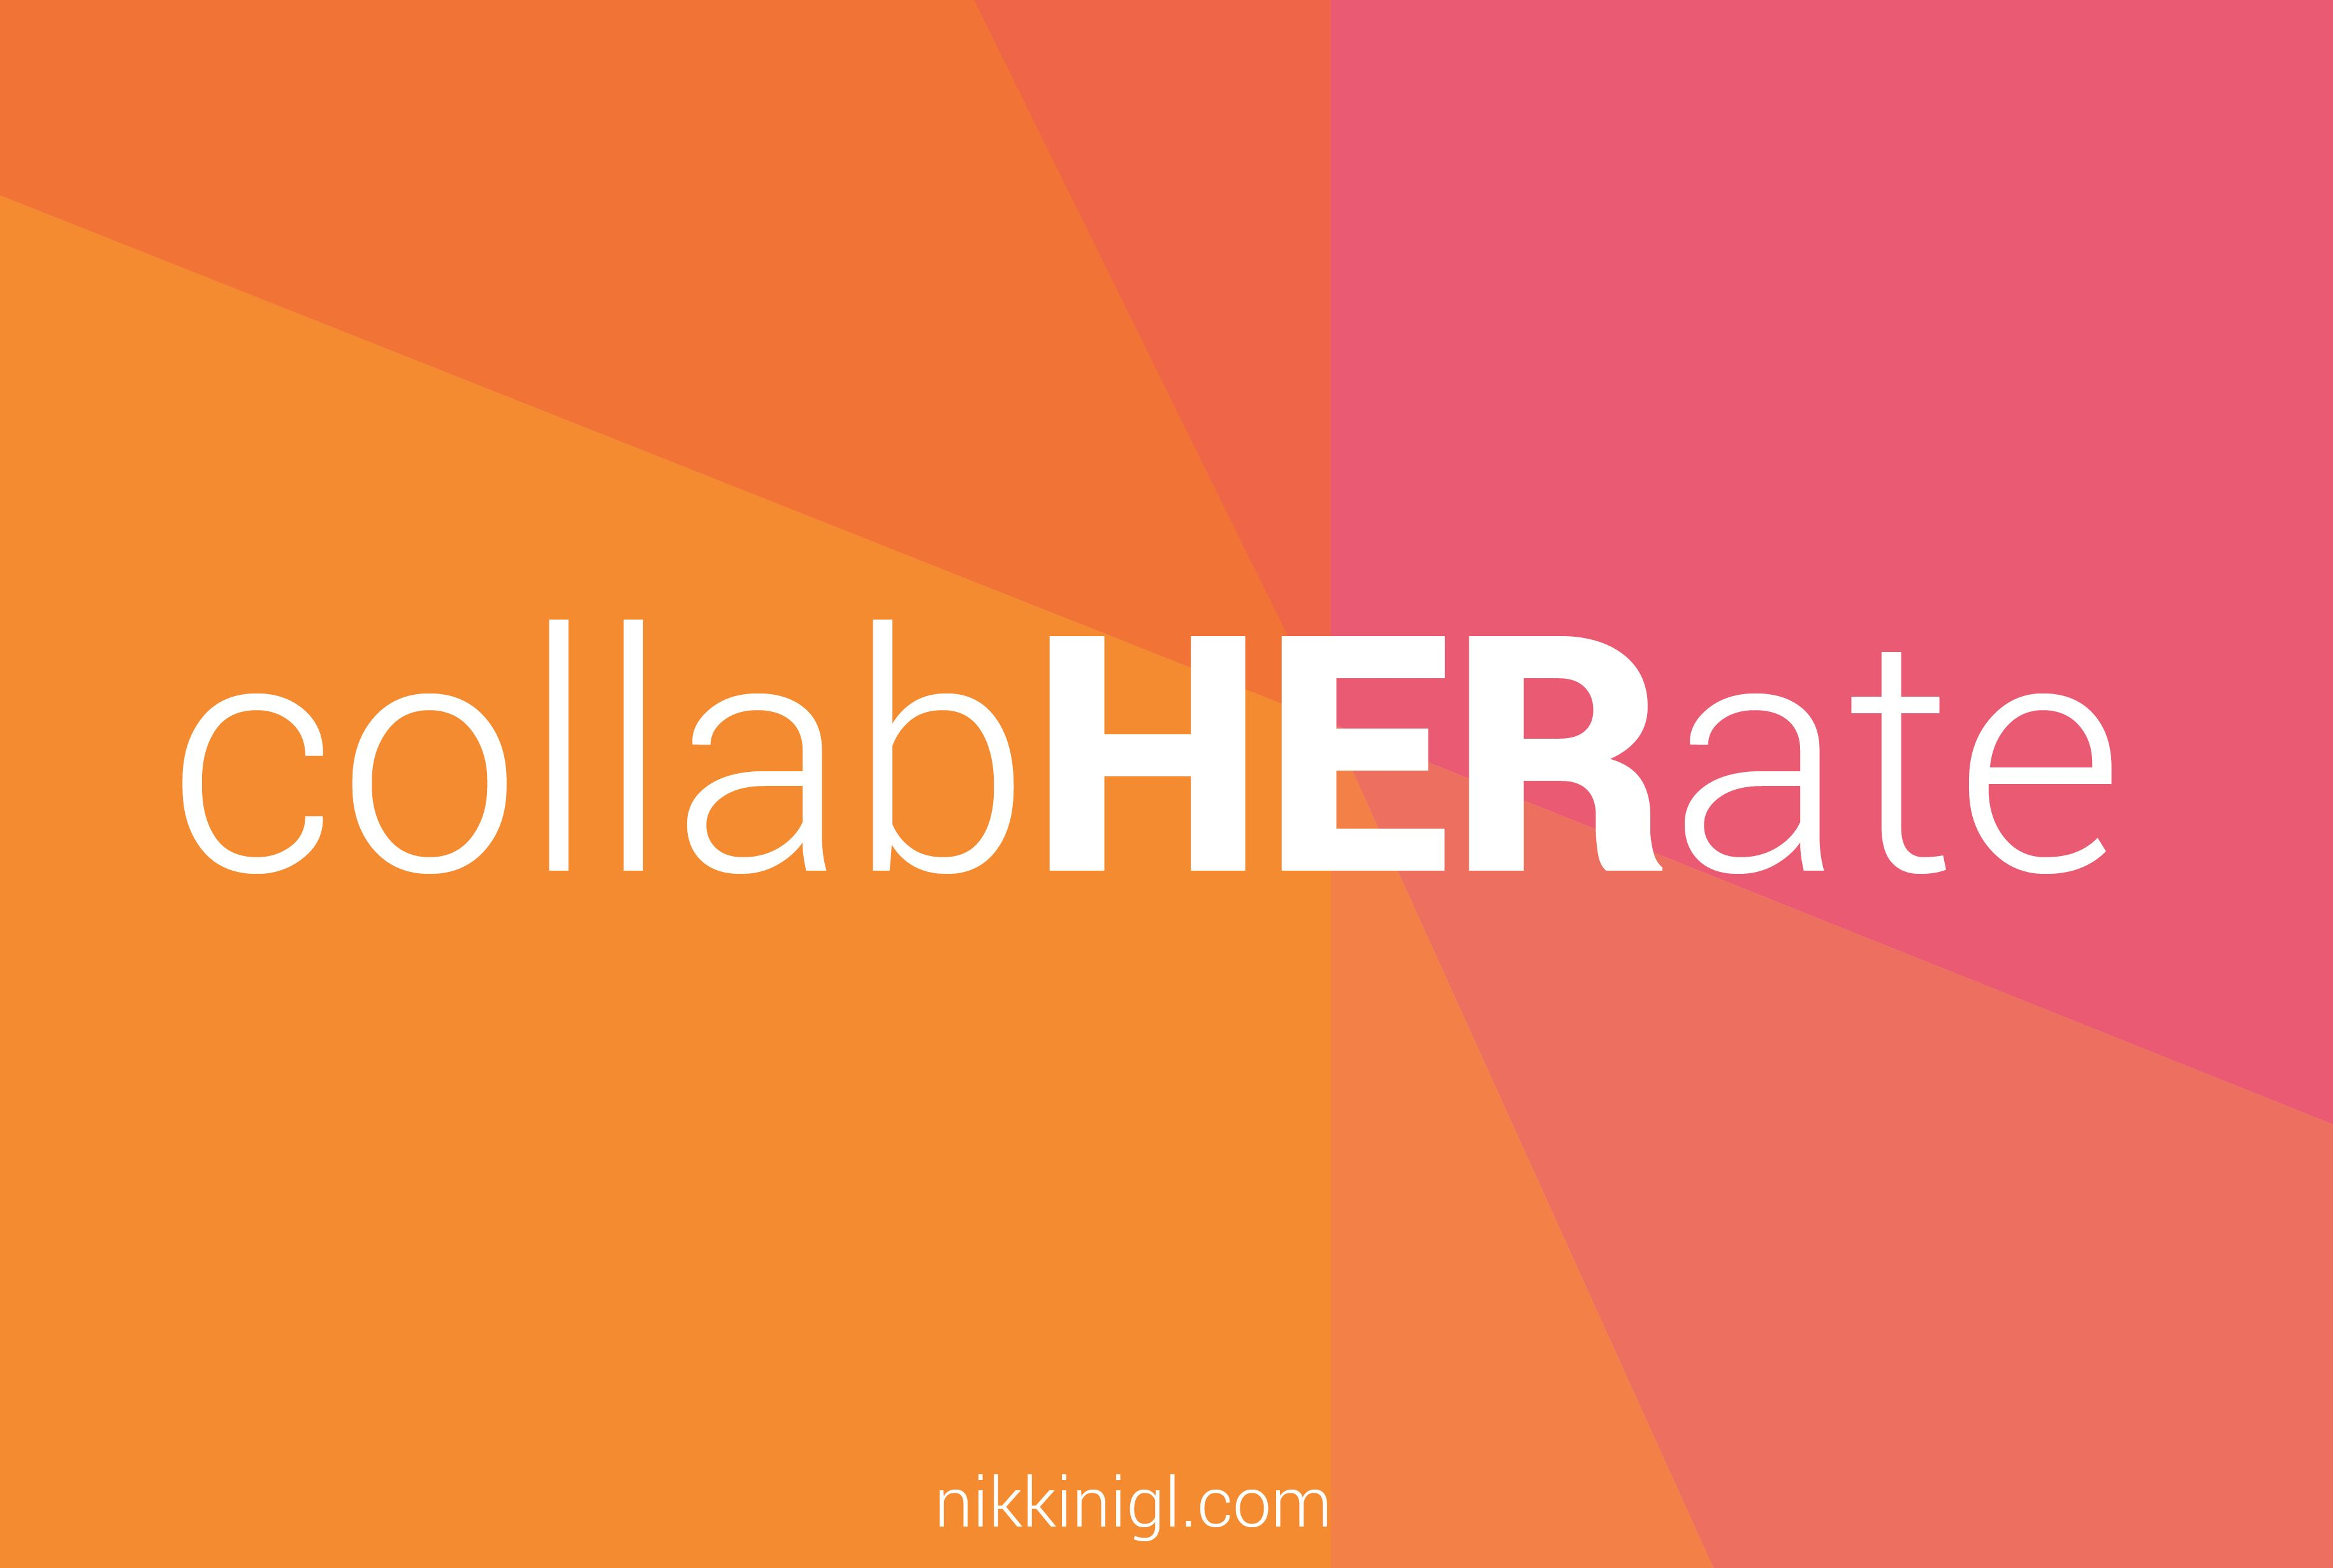 #CollabHERate #WomenUNITE #ABOUTWOMEN